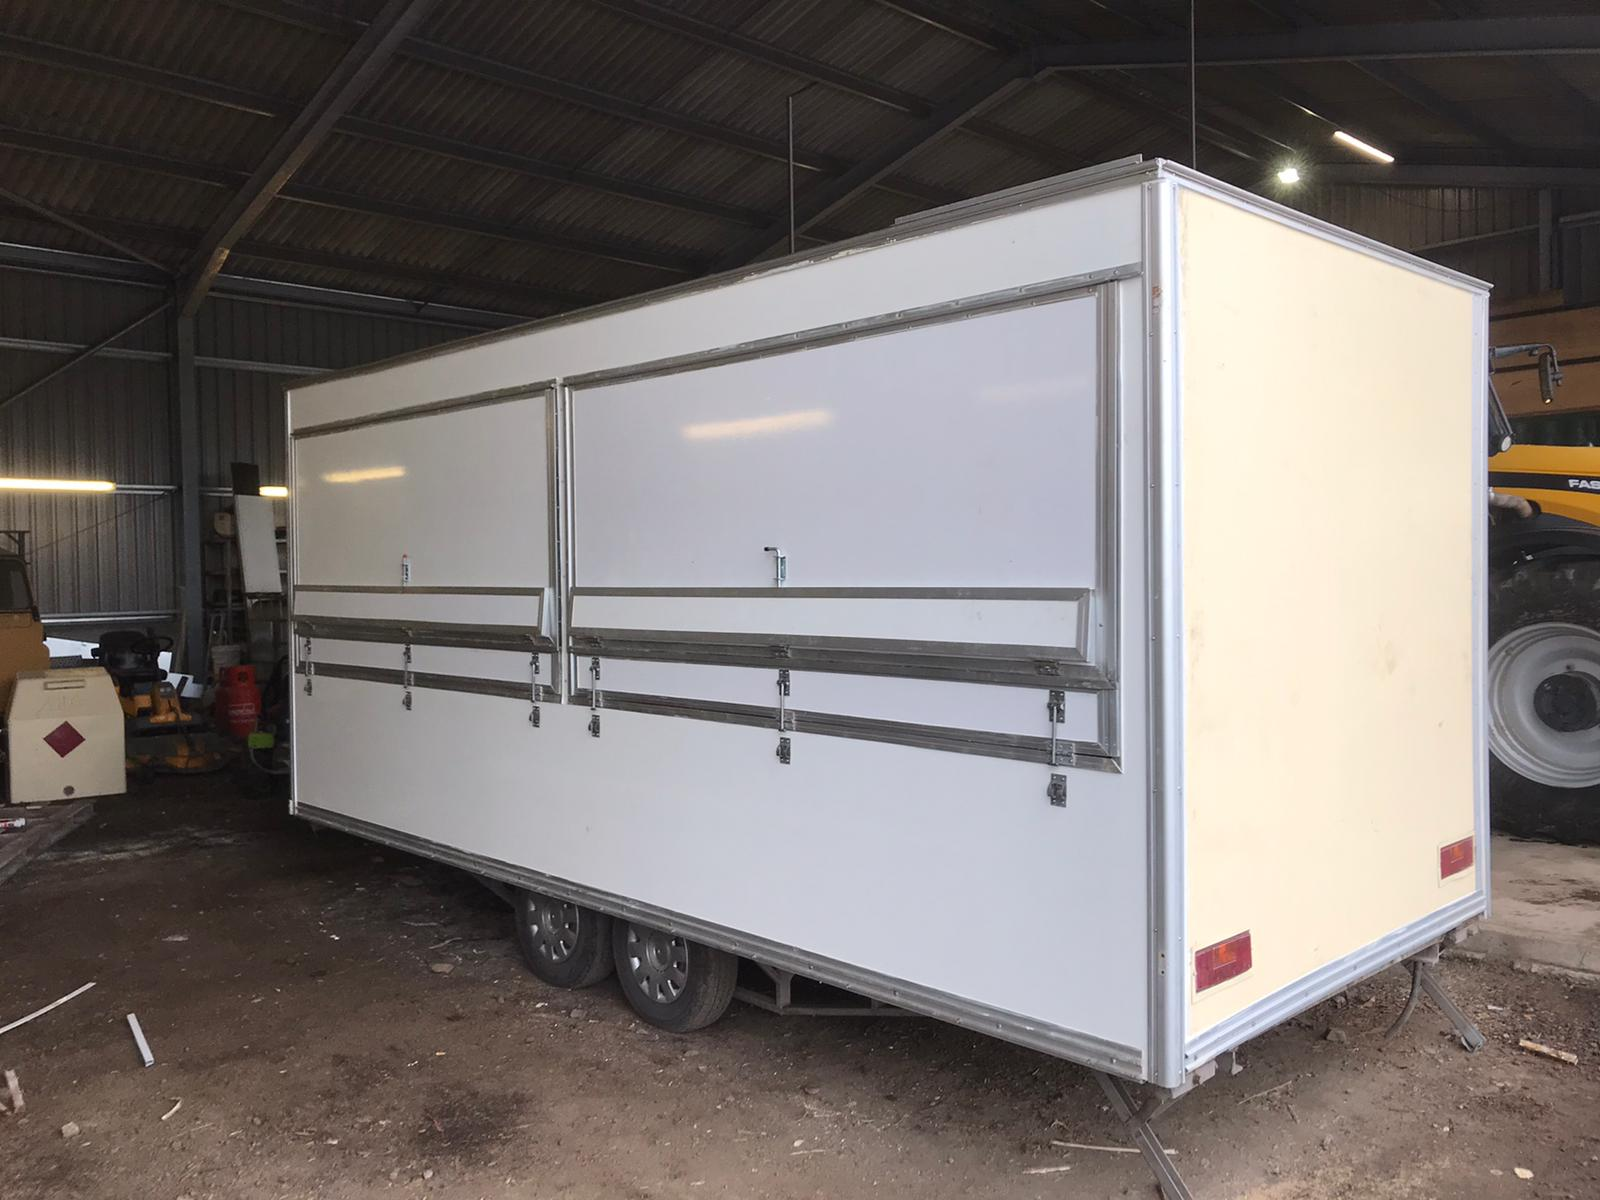 Cheshire Trailers   Trailer Hire, Repair & Sales, Cheshire   Catering Trailer